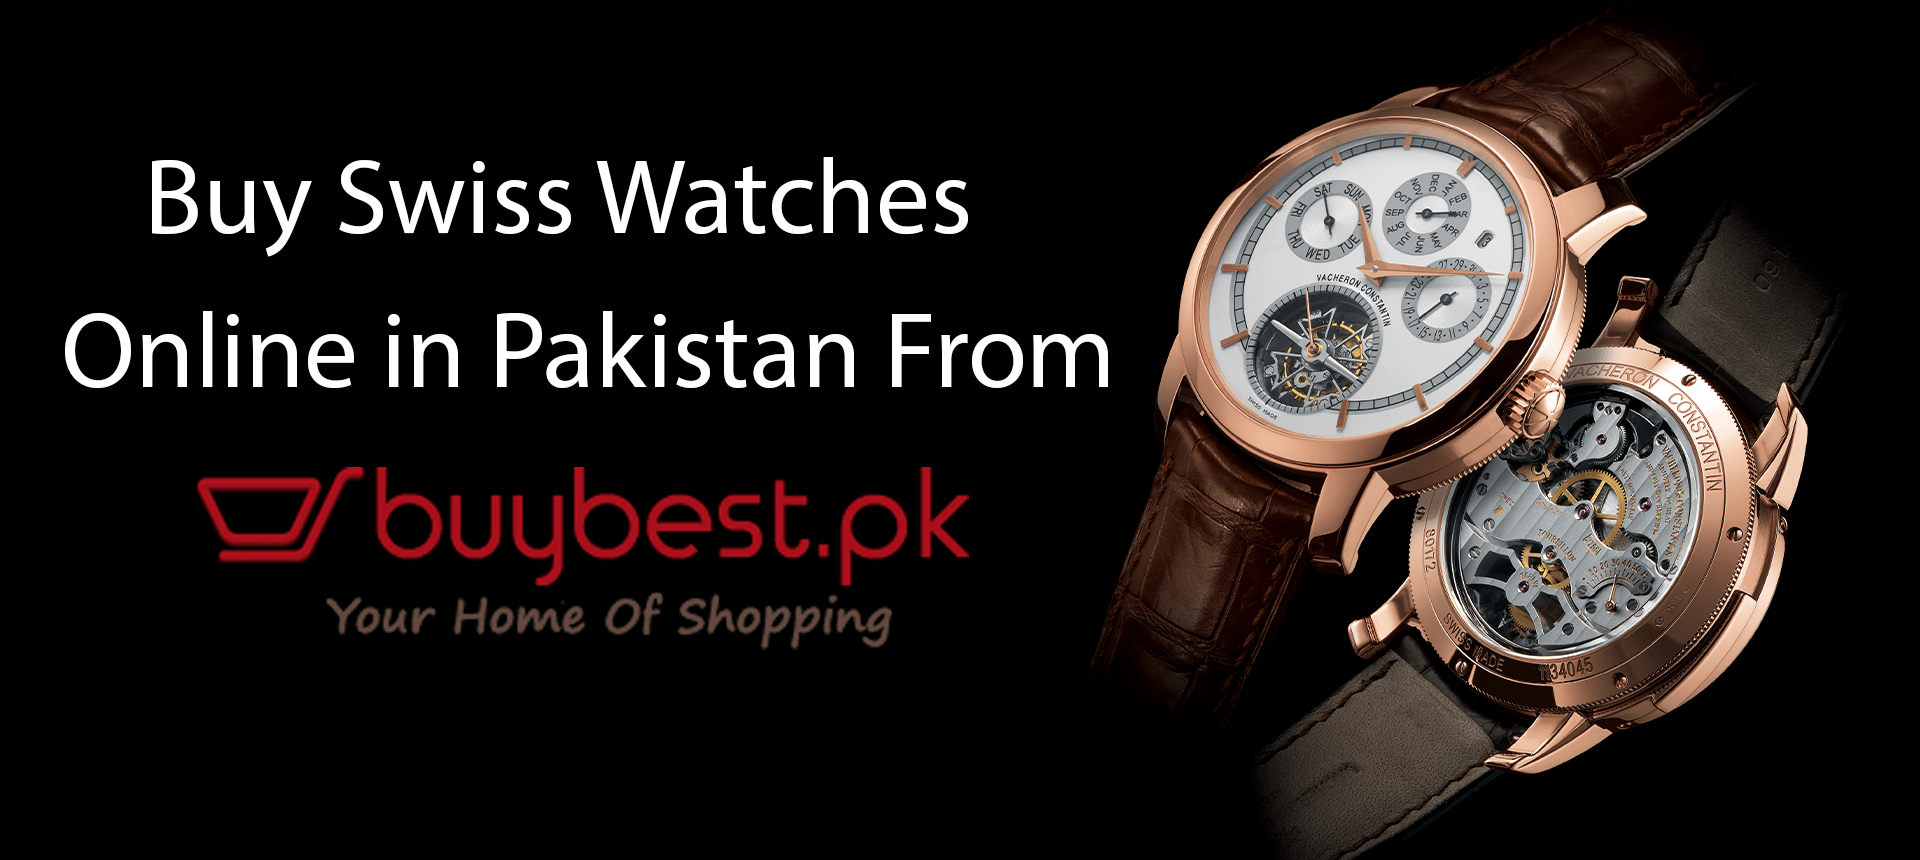 Watches-Banner